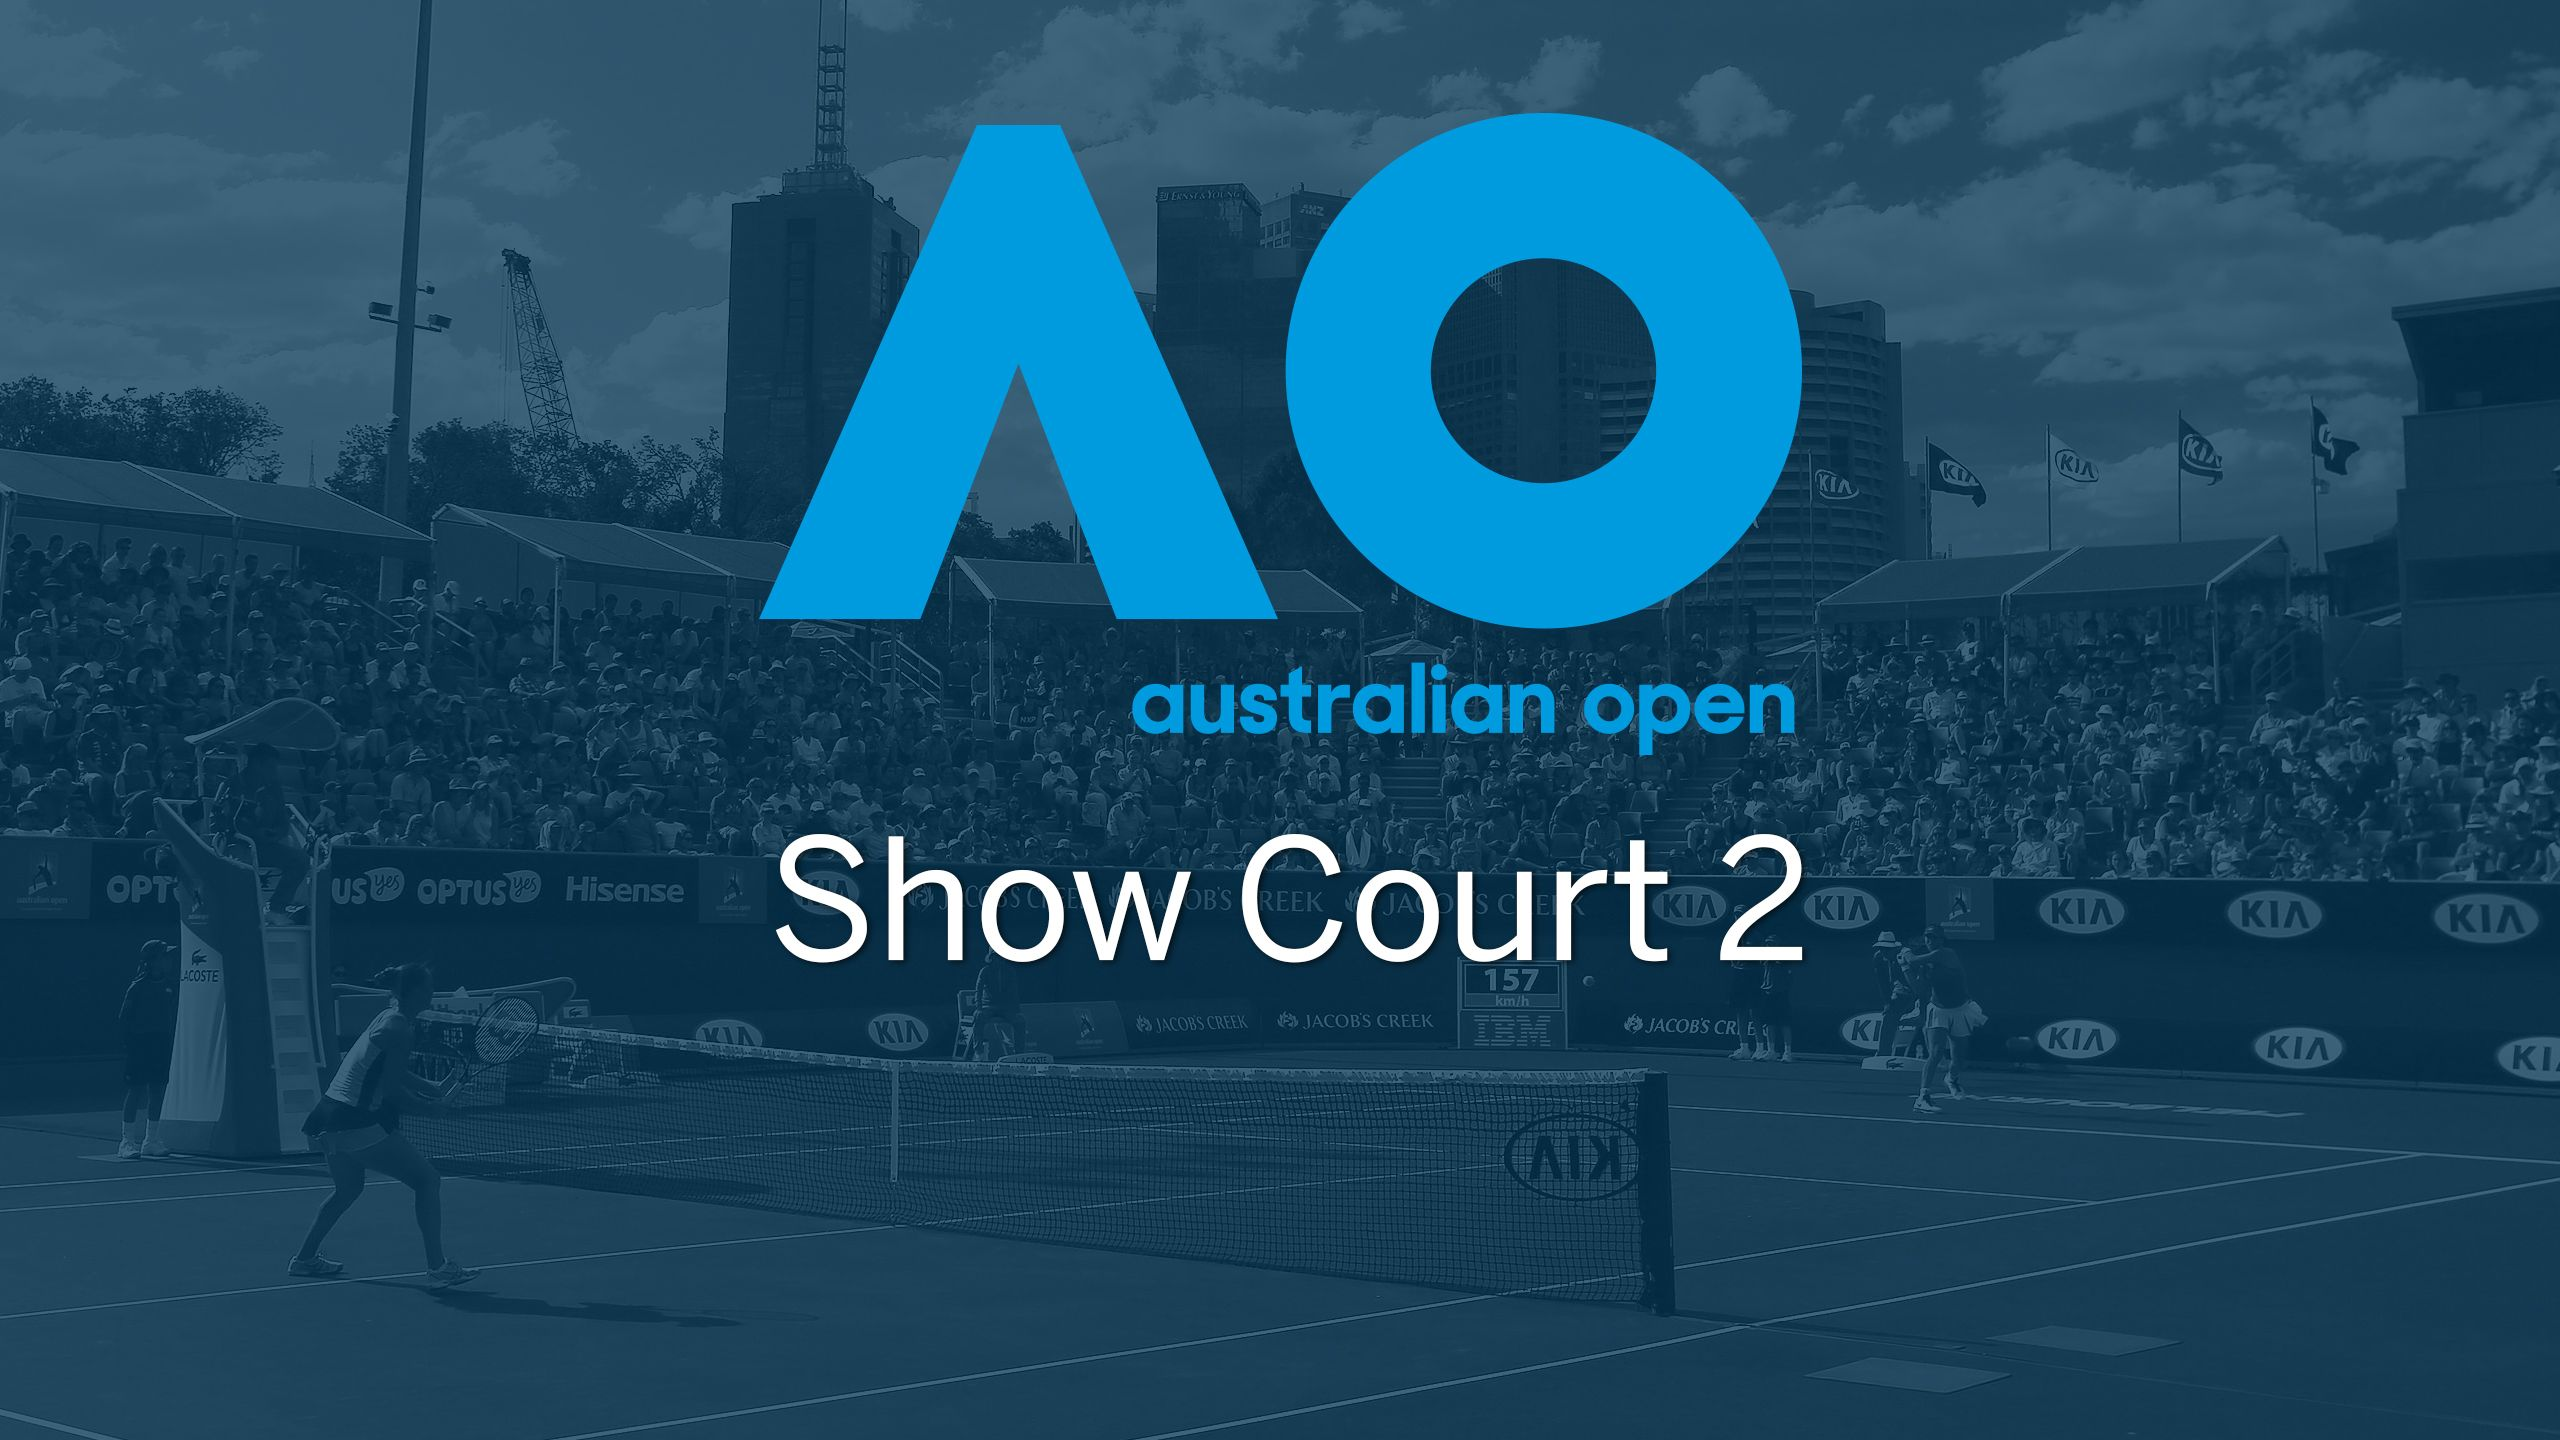 (3) Rojer/Tecau vs. Groth/Hewitt (Men's Doubles Second Round)